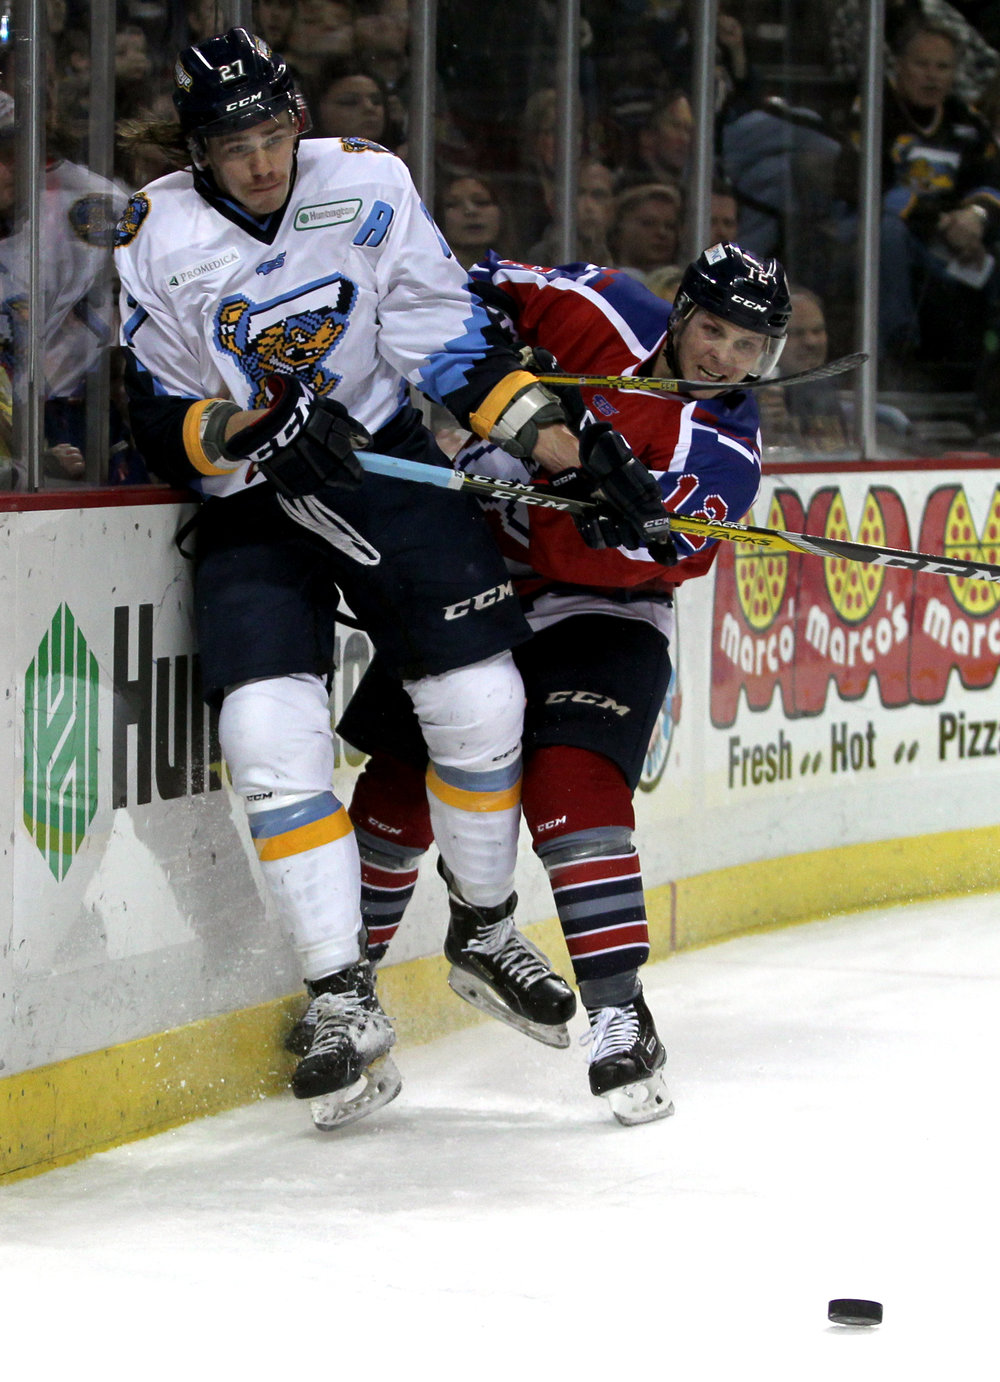 Toledo Walleye forward A.J. Jenks (27)  is checked into the boards by Kalamazoo Wings defender Sean O'Rourke (12) during the hockey game at the Huntington Center in downtown Toledo, Oh.  on Saturday, Nov. 19, 2016. The Walleye won the game 6-2.